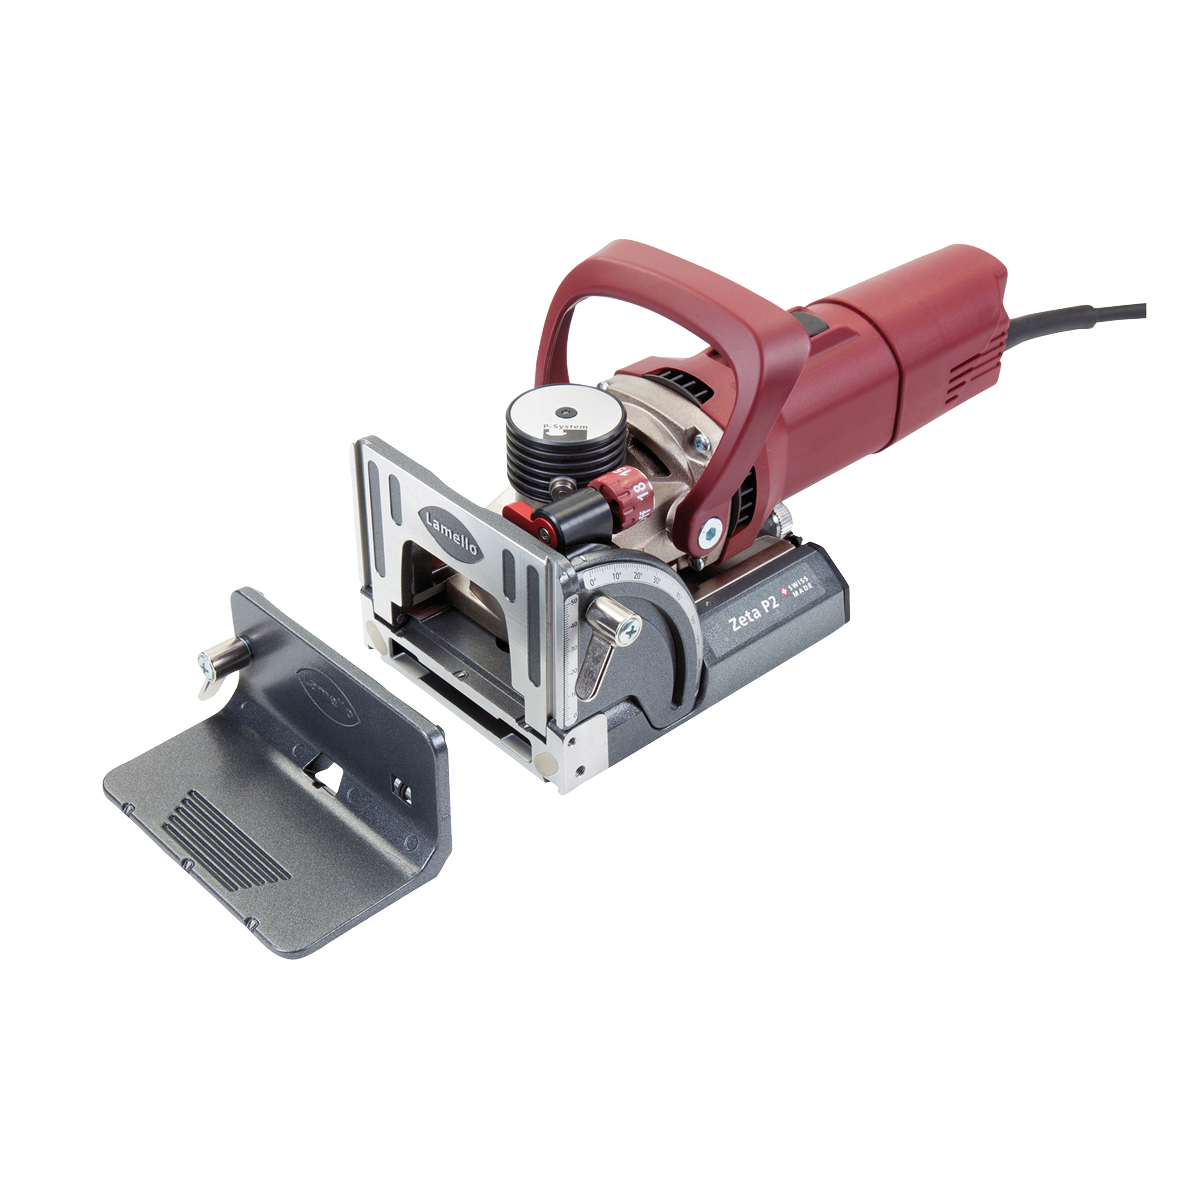 Lamello 101402sd Biscuit Joiner Diamond Tipped Profile Groove